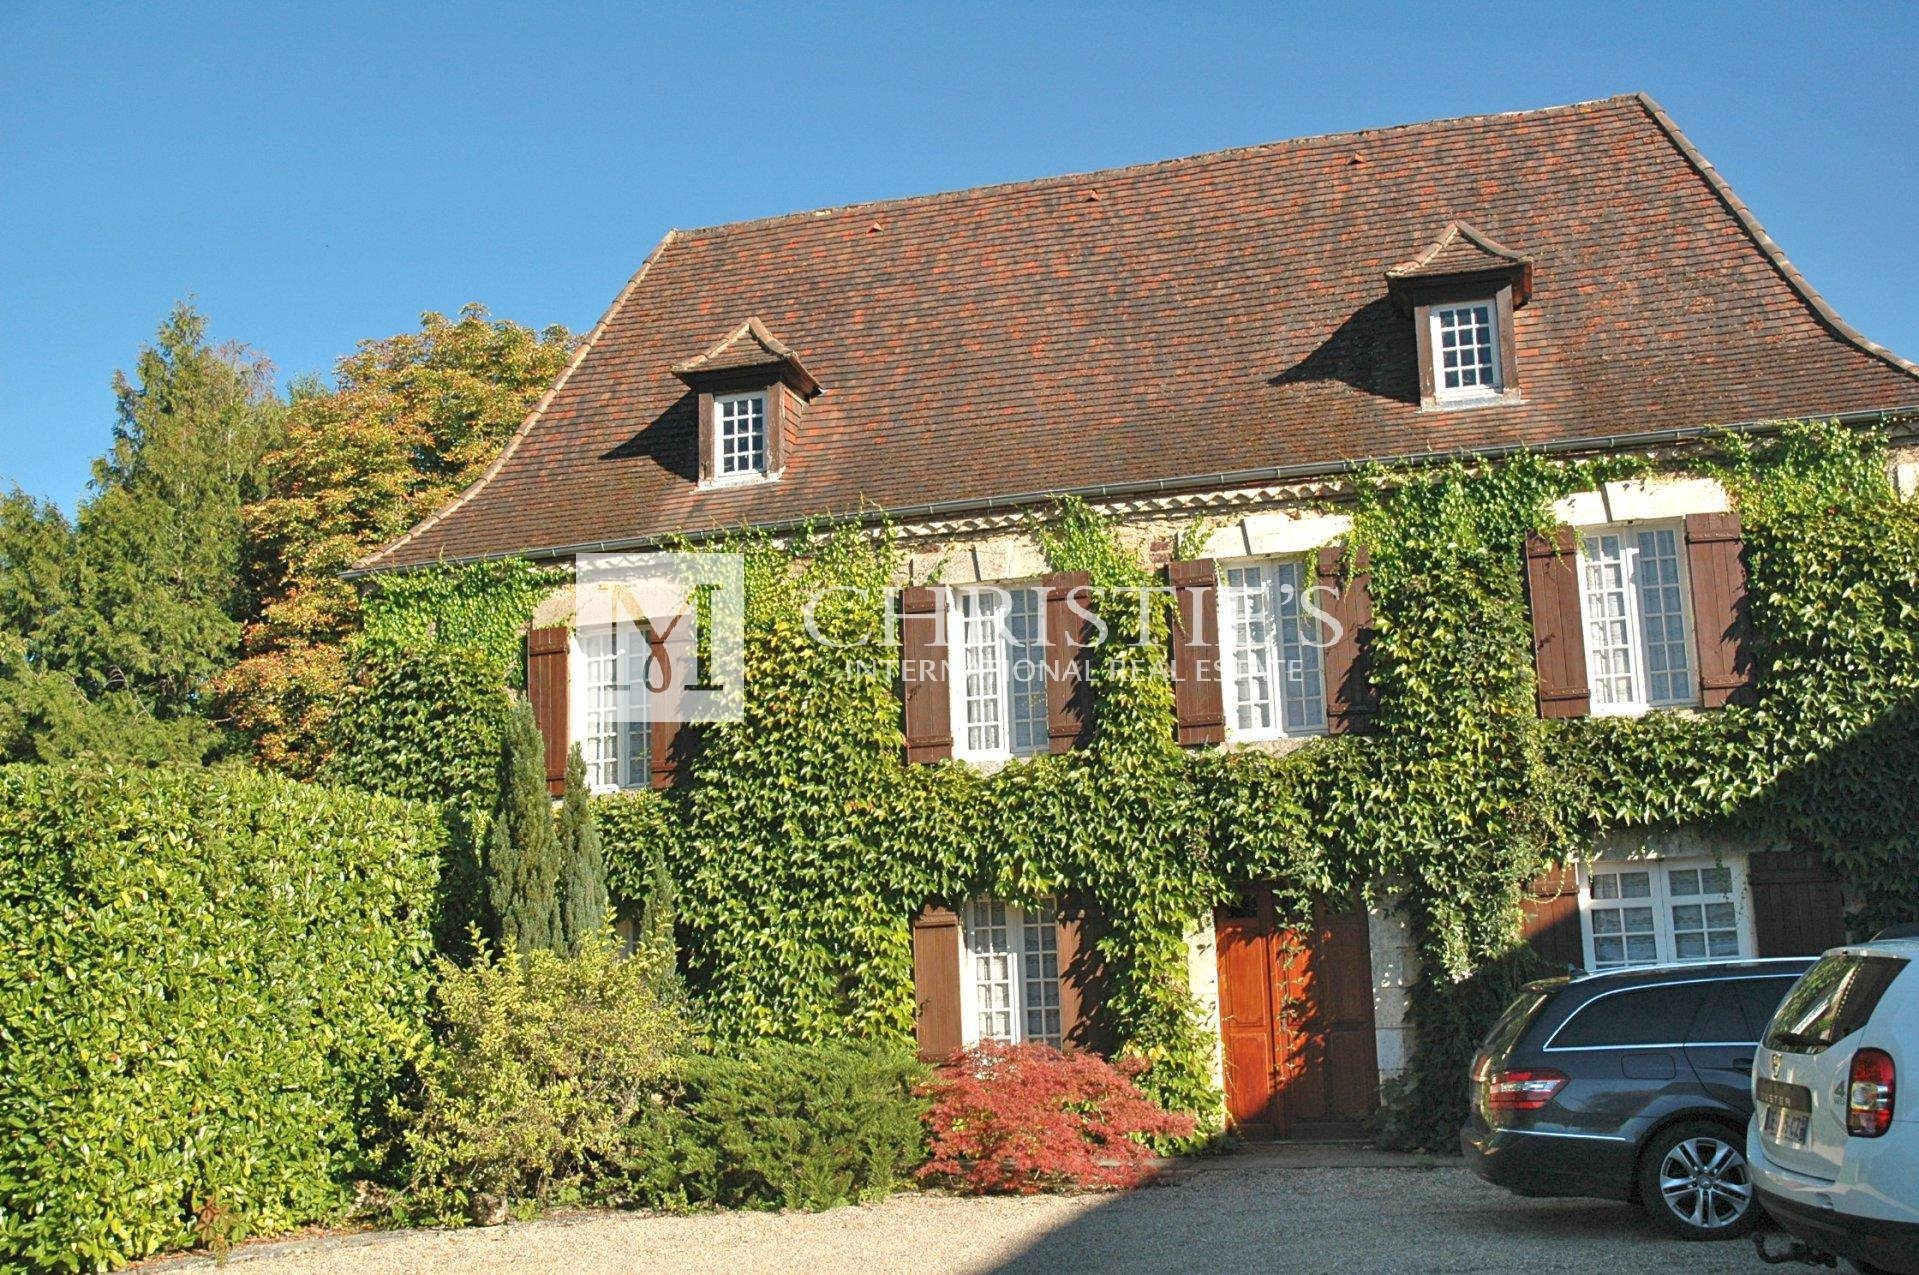 France Habitation Service Client Luxury House And Guest House For Sale With Two Pools And Views